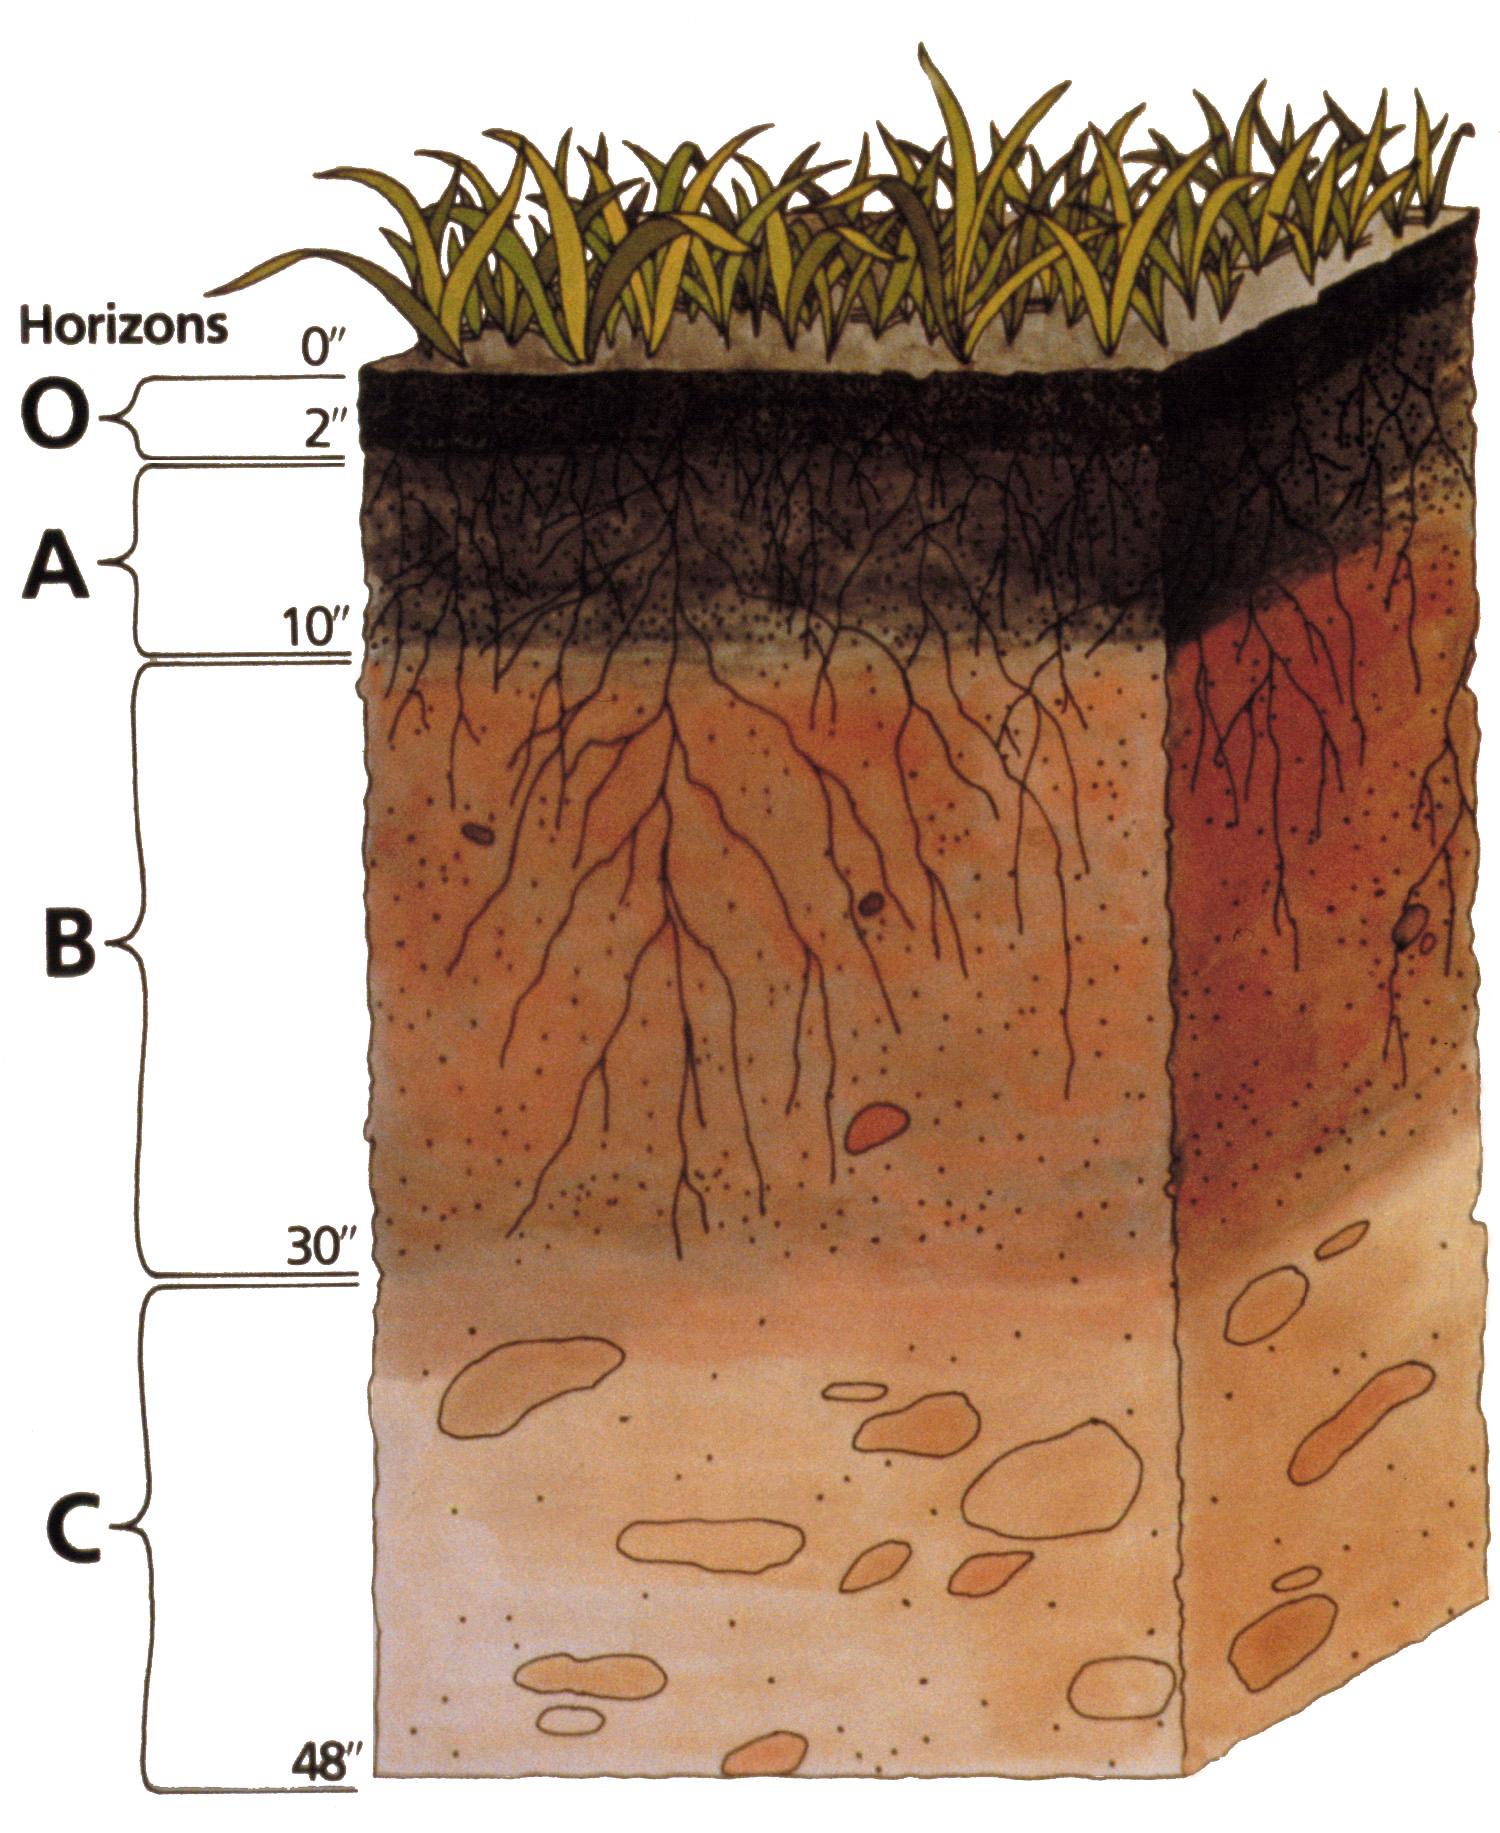 Soil Horizons-From the USGS